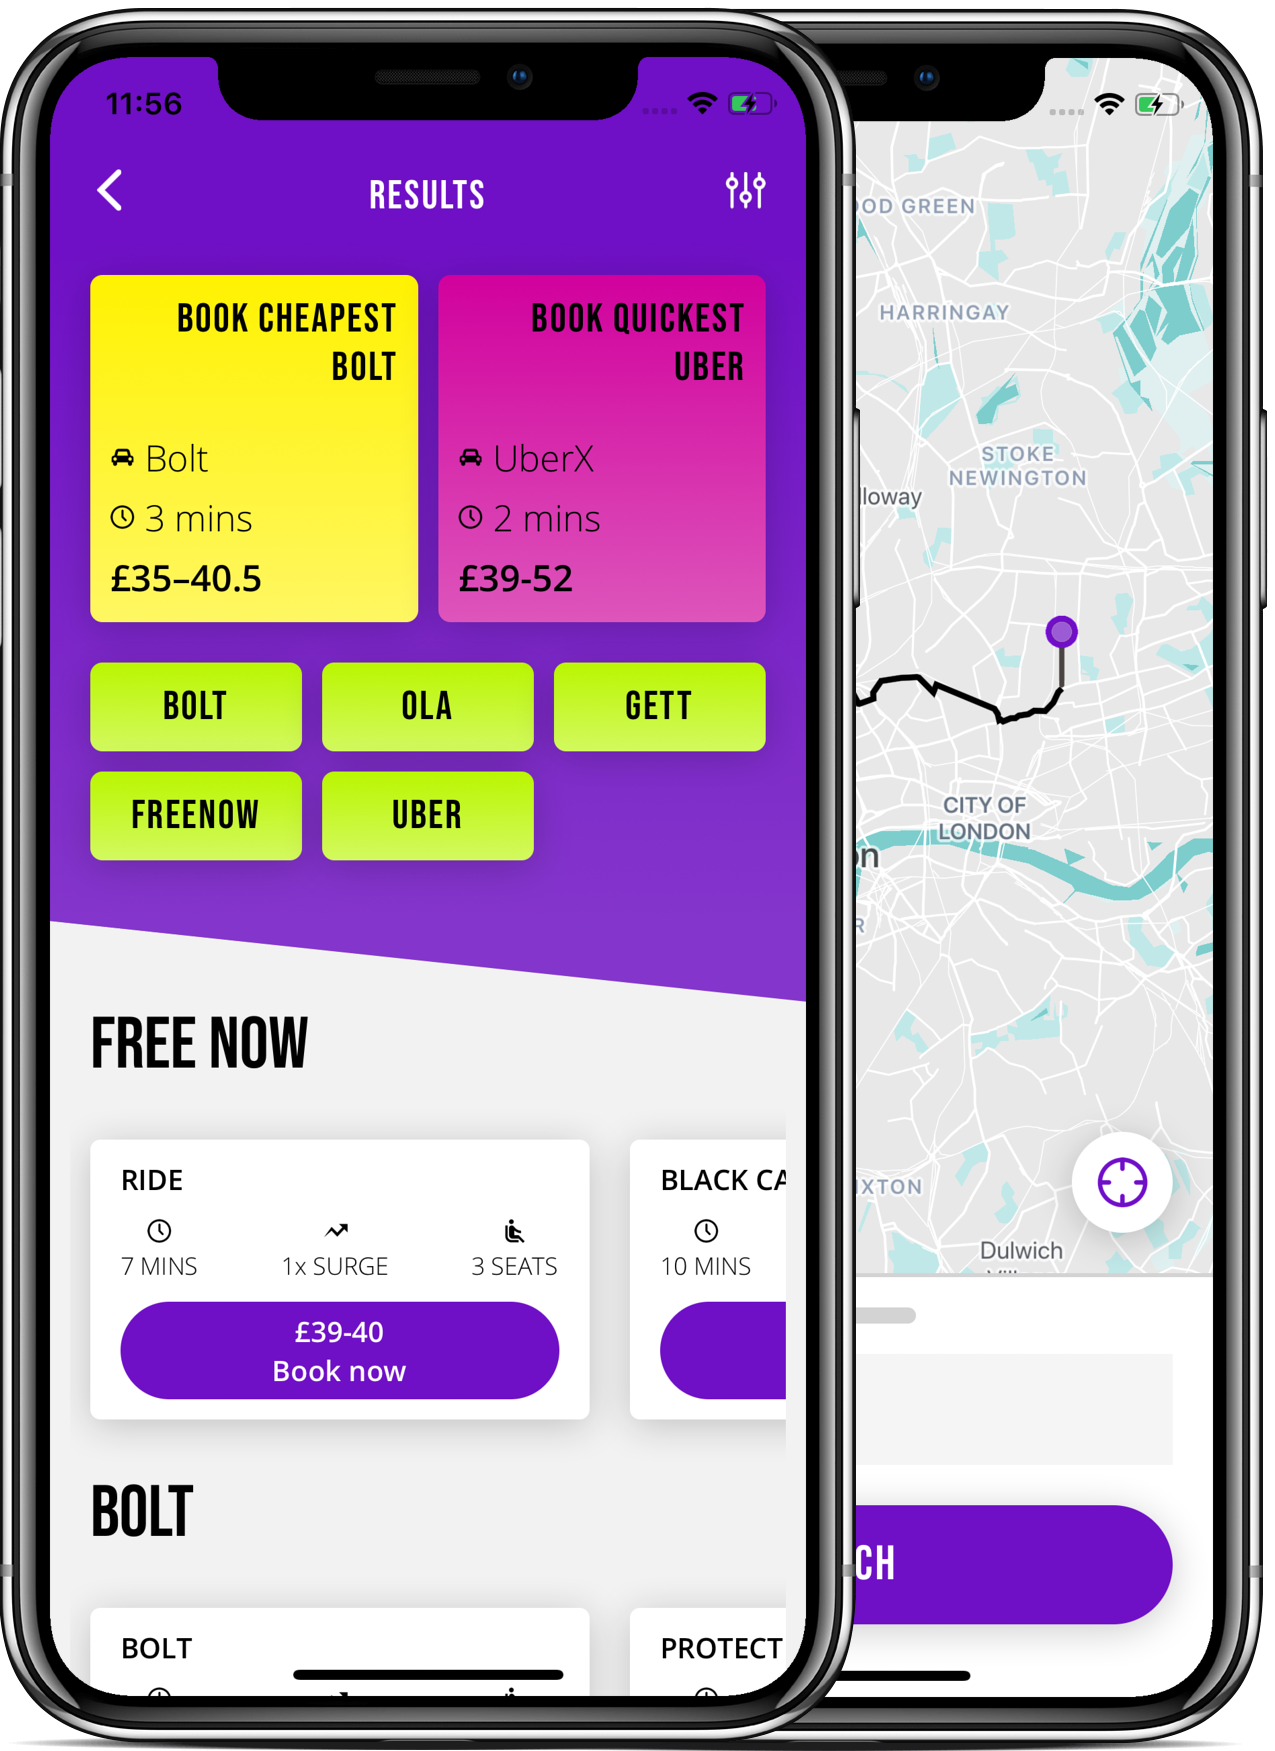 ridehub app map page and results page